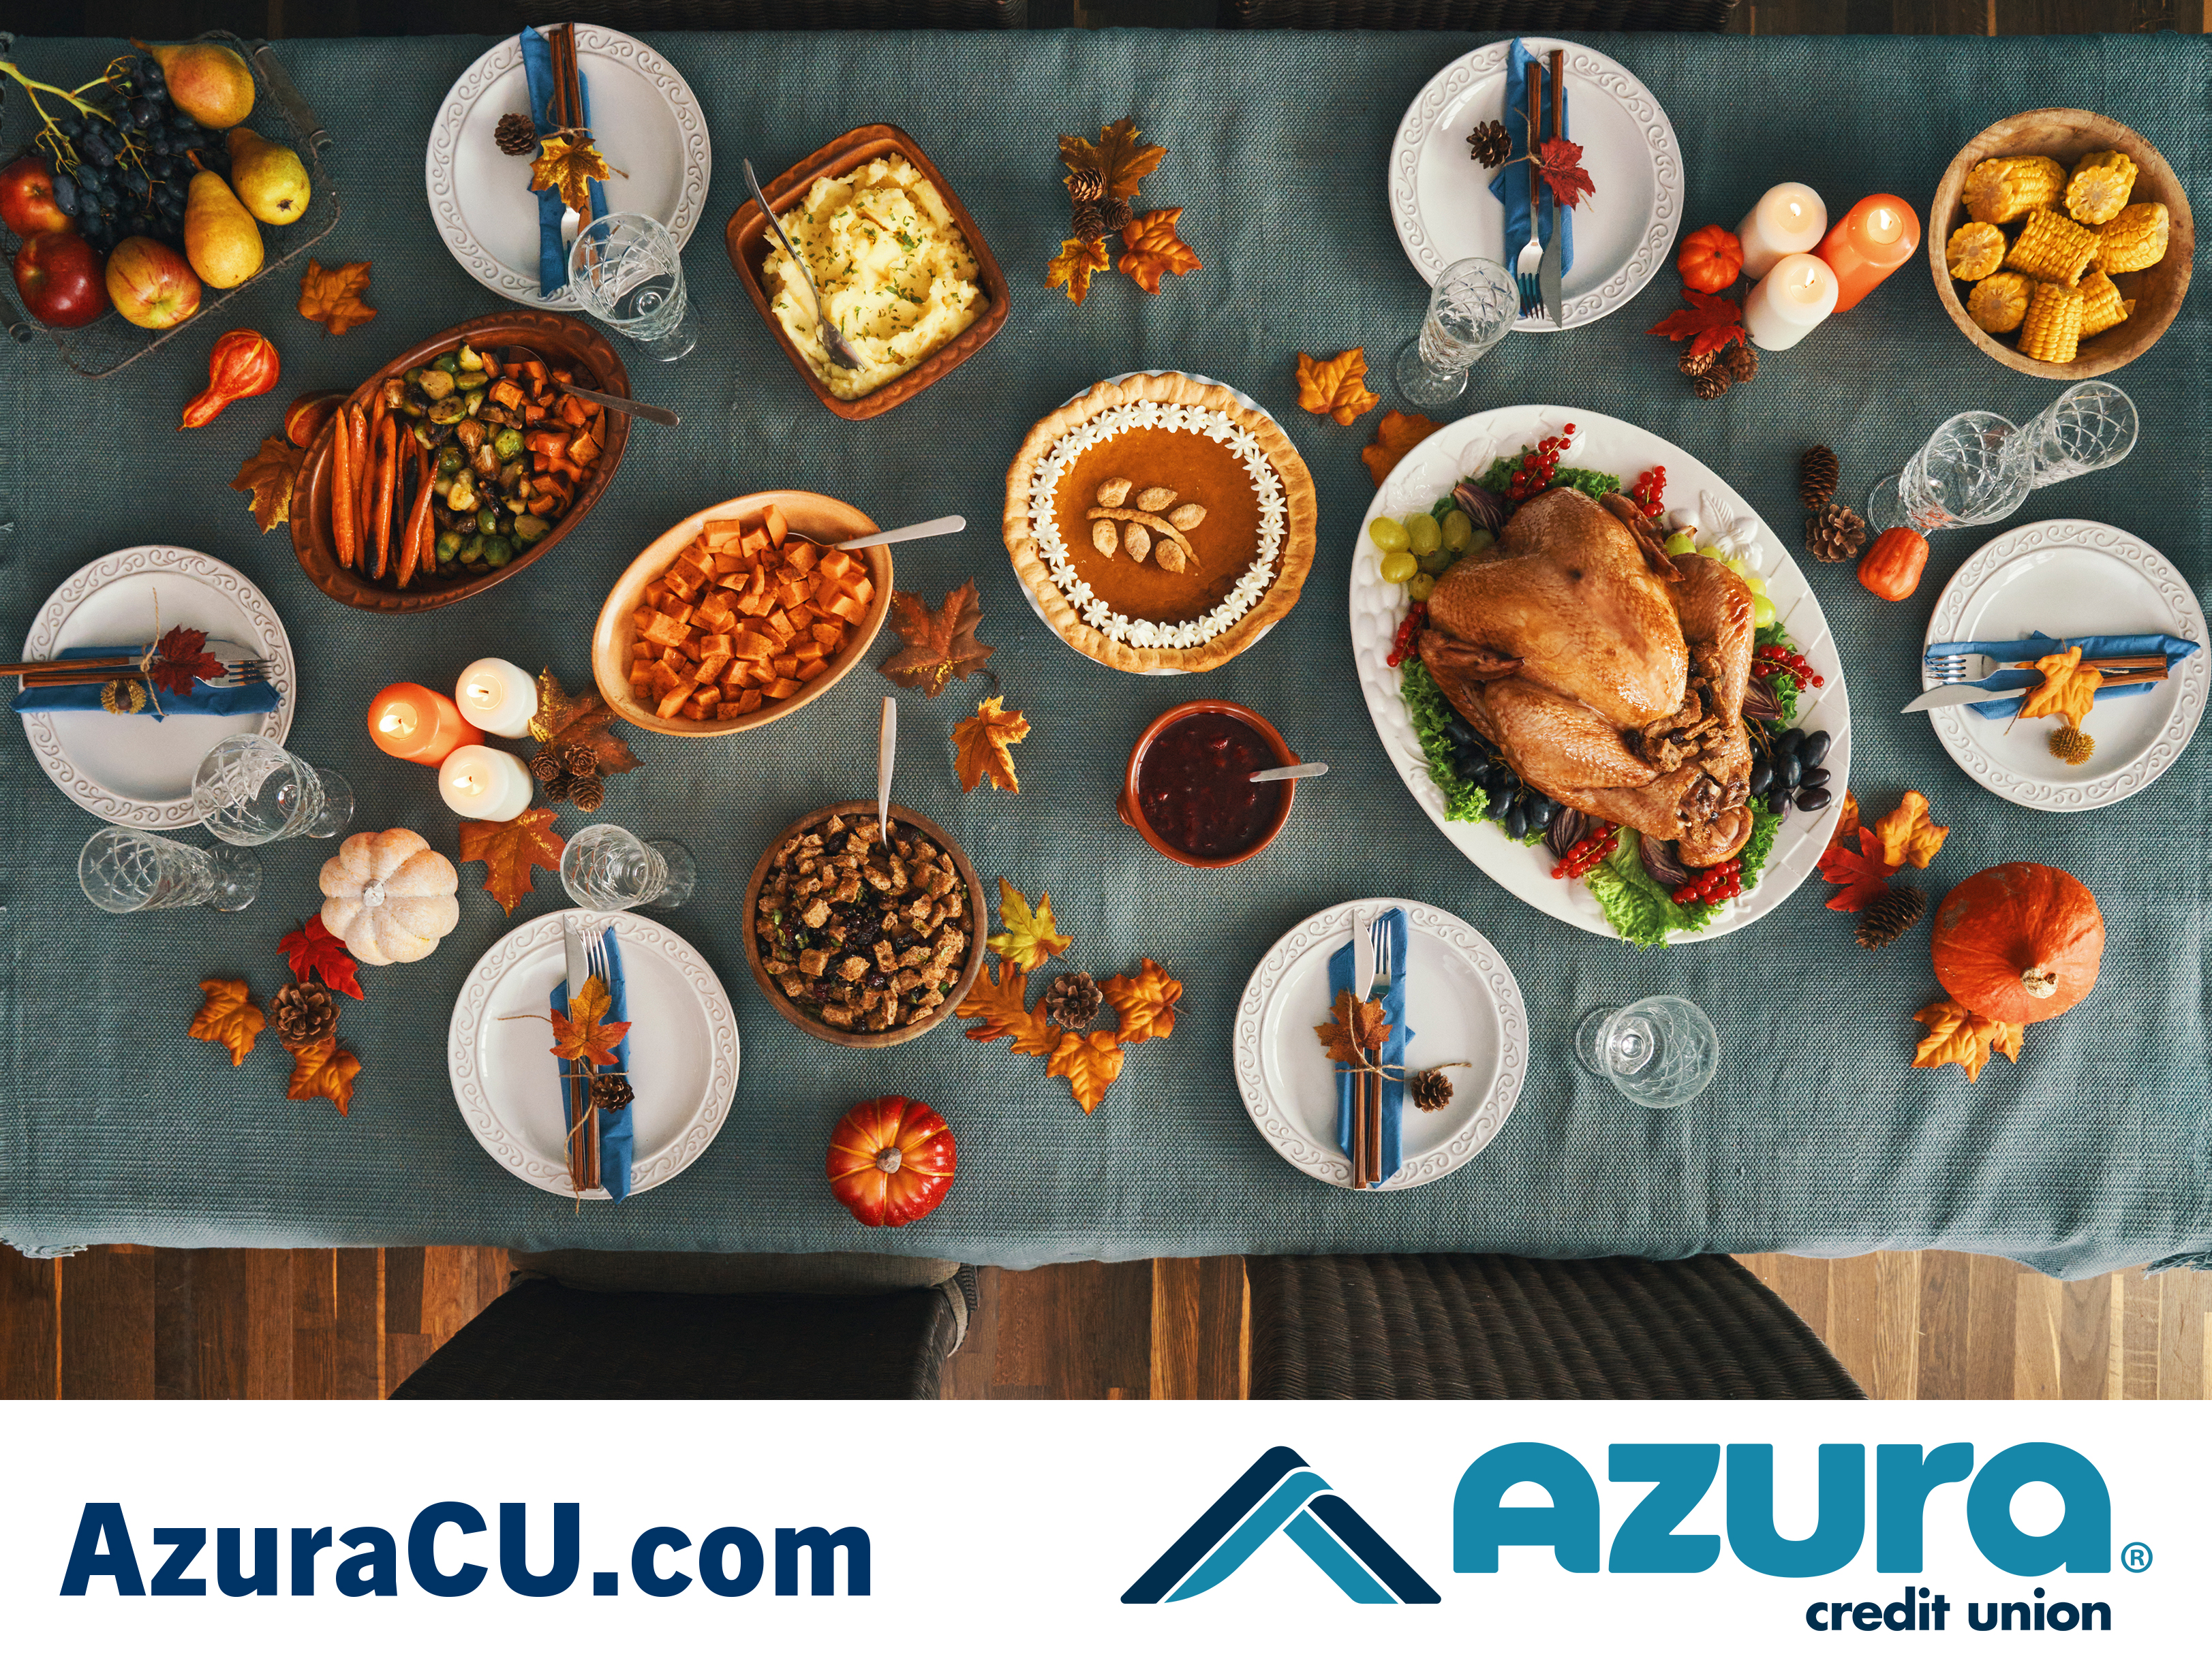 Was there a Credit Union at the first Thanksgiving?